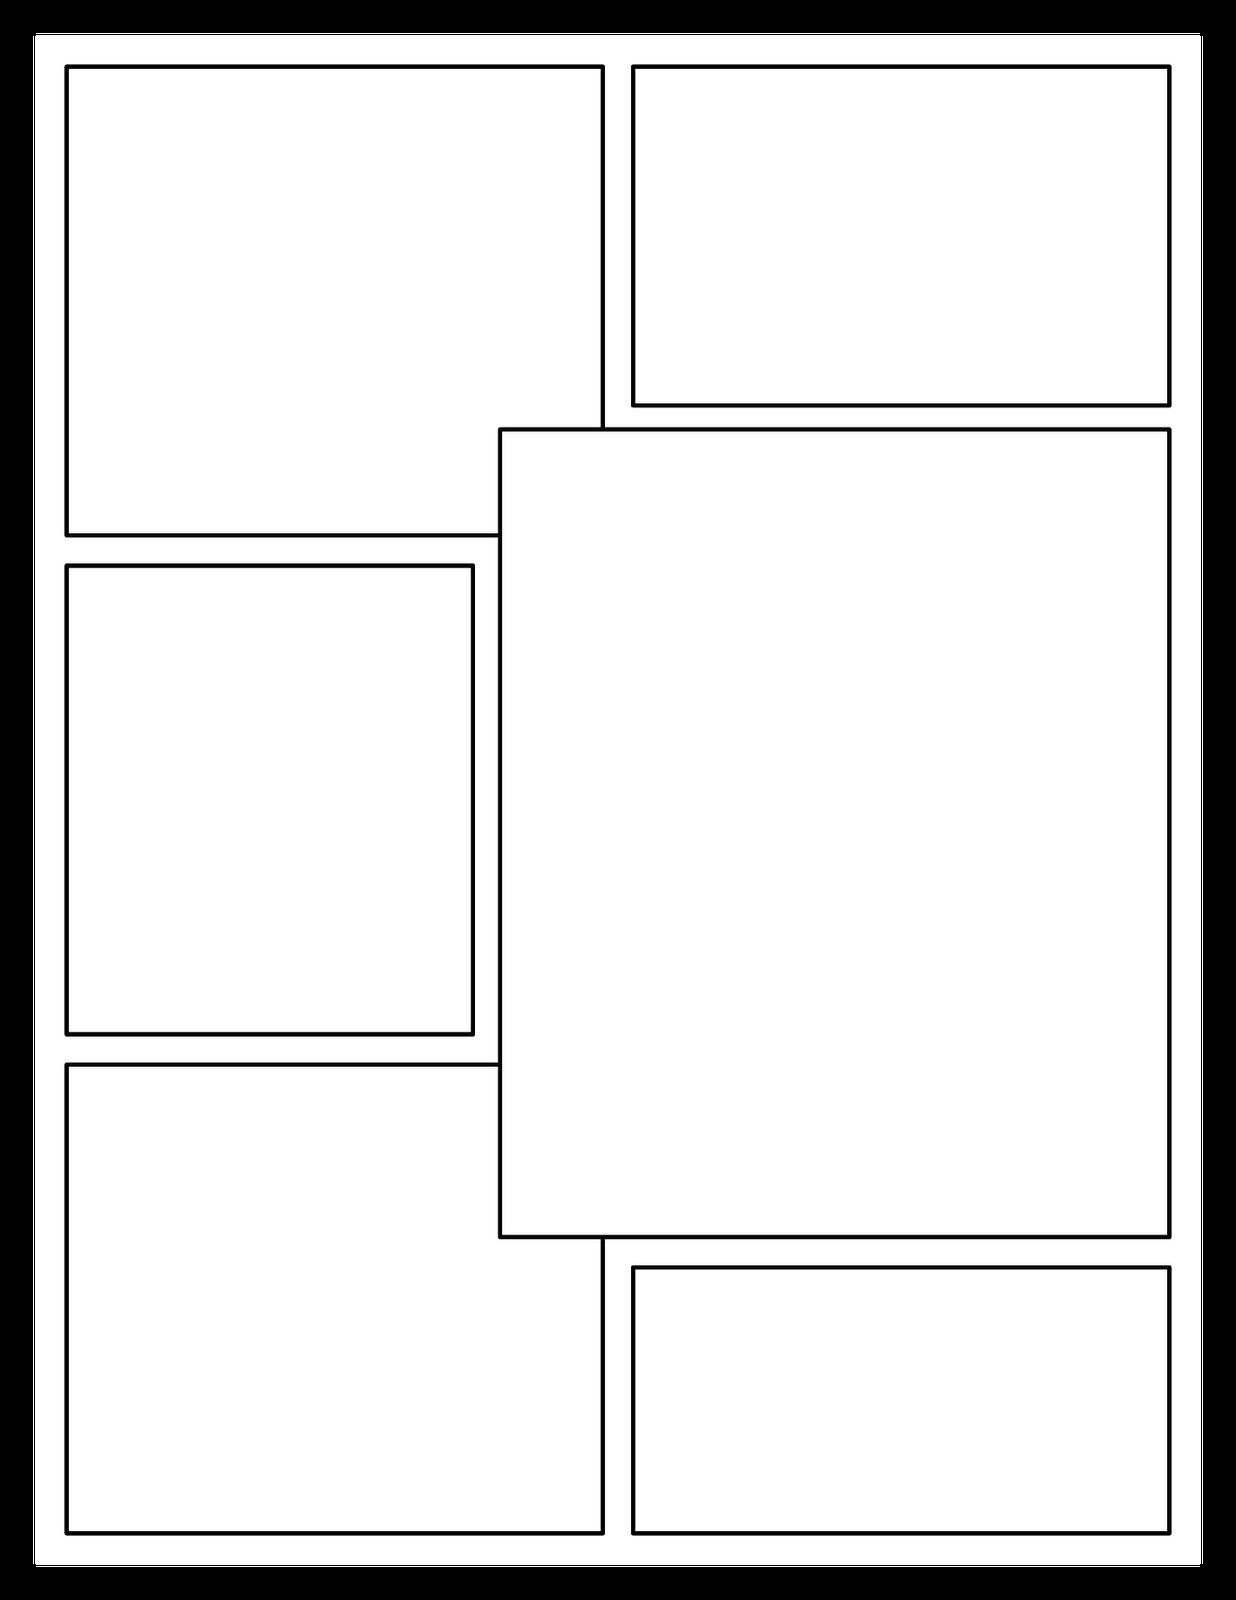 Comic Book Template Photoshop Mrs orman S Classroom Fering Choices for Your Readers